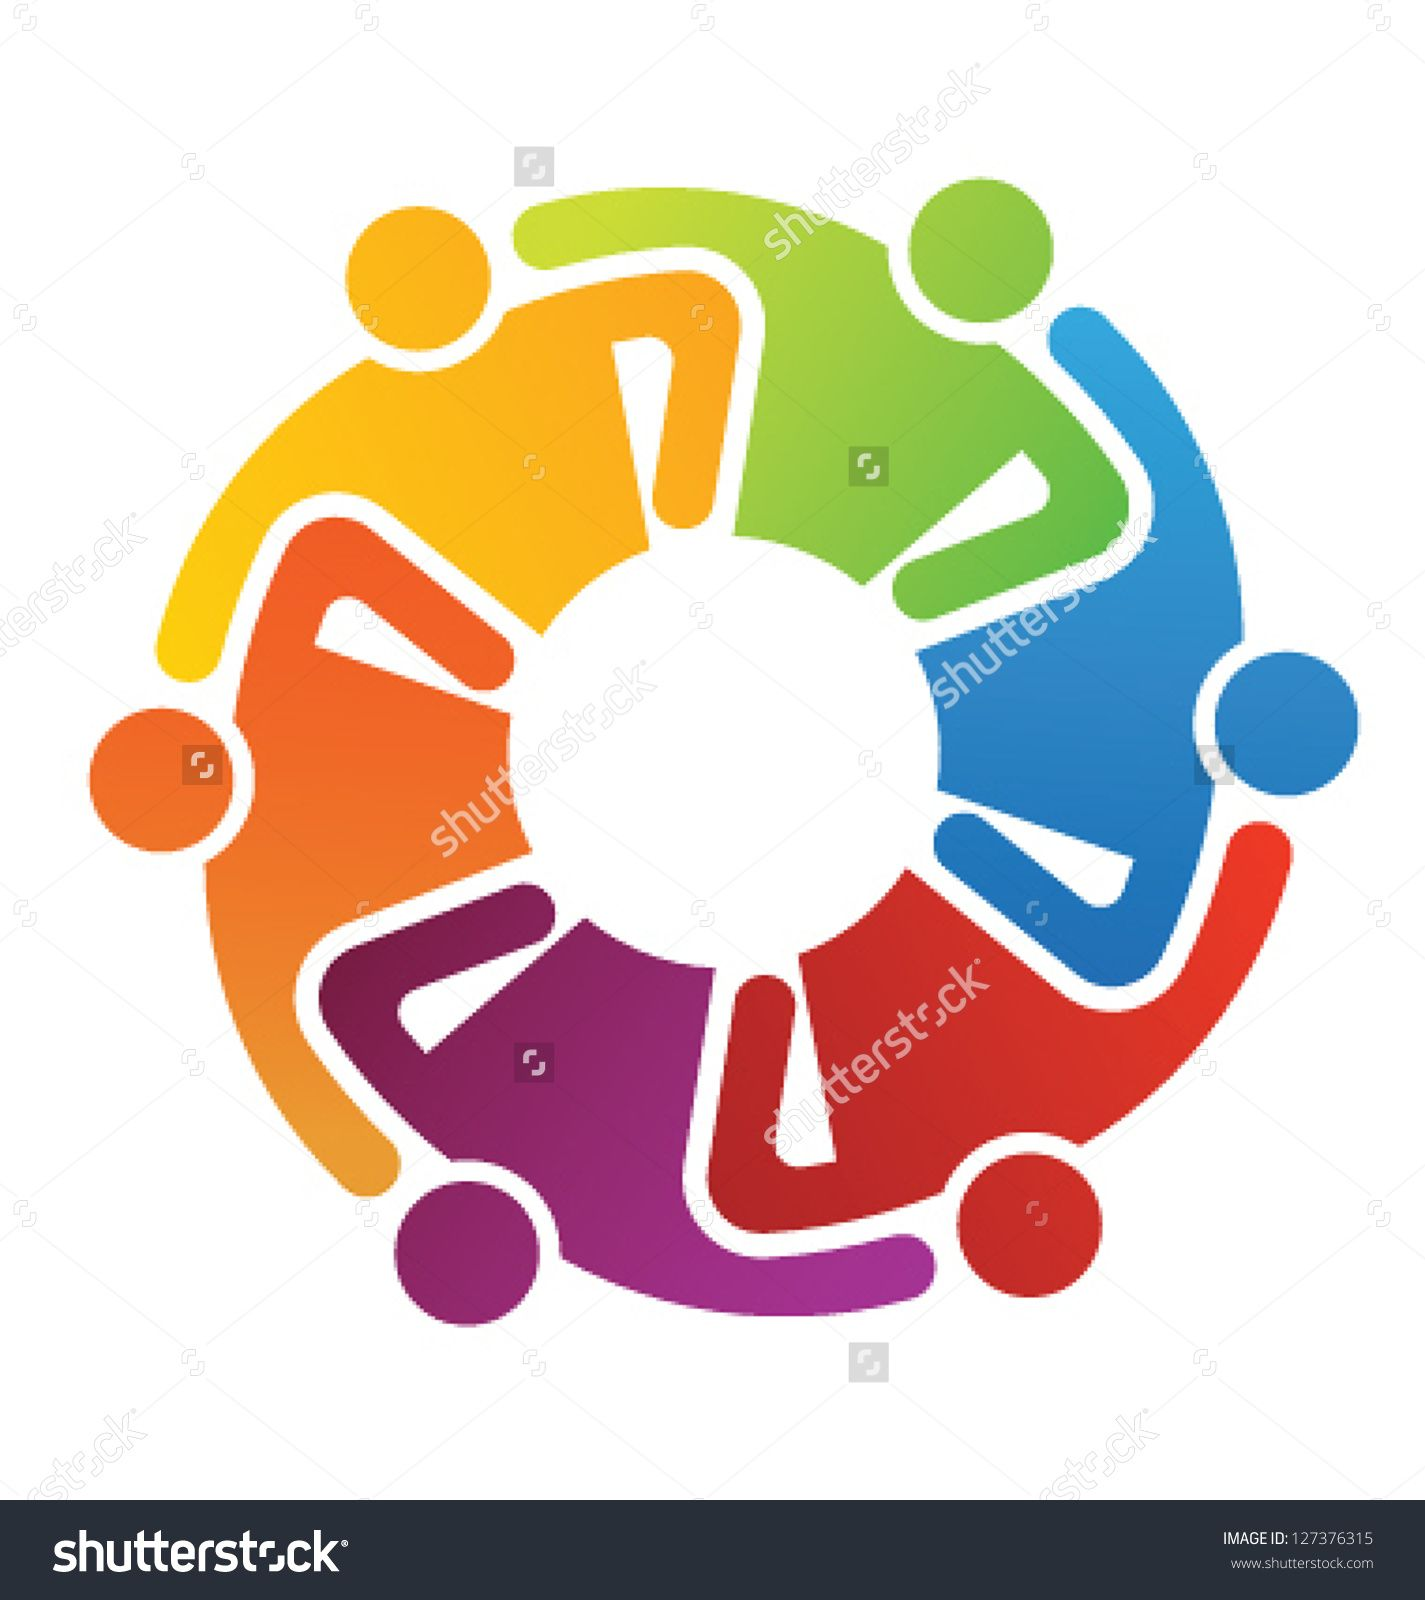 Vector Icon Graphic Teamwork Hug 6 Group of People